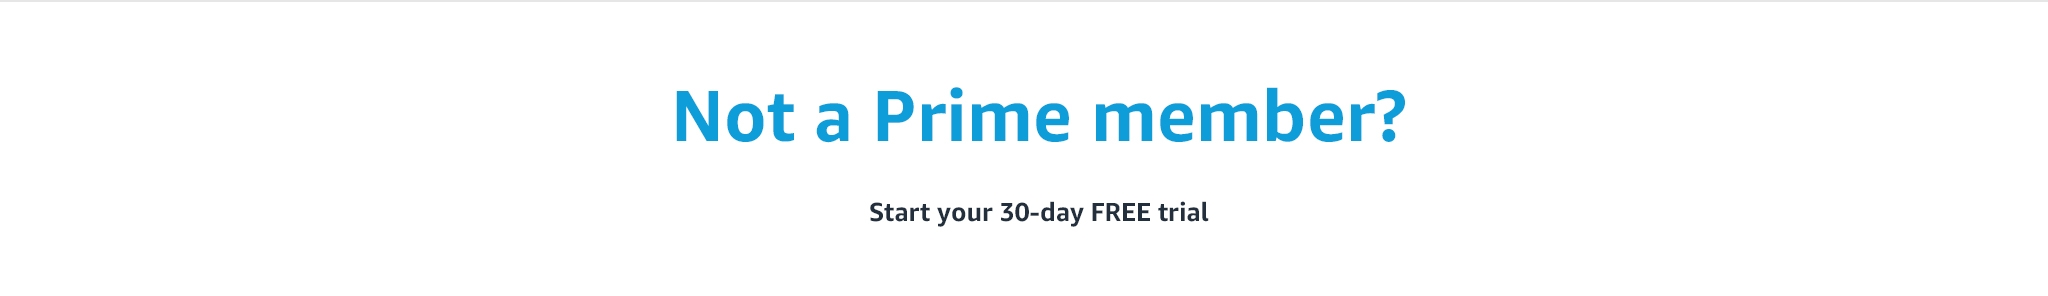 Start your 30-day FREE trial